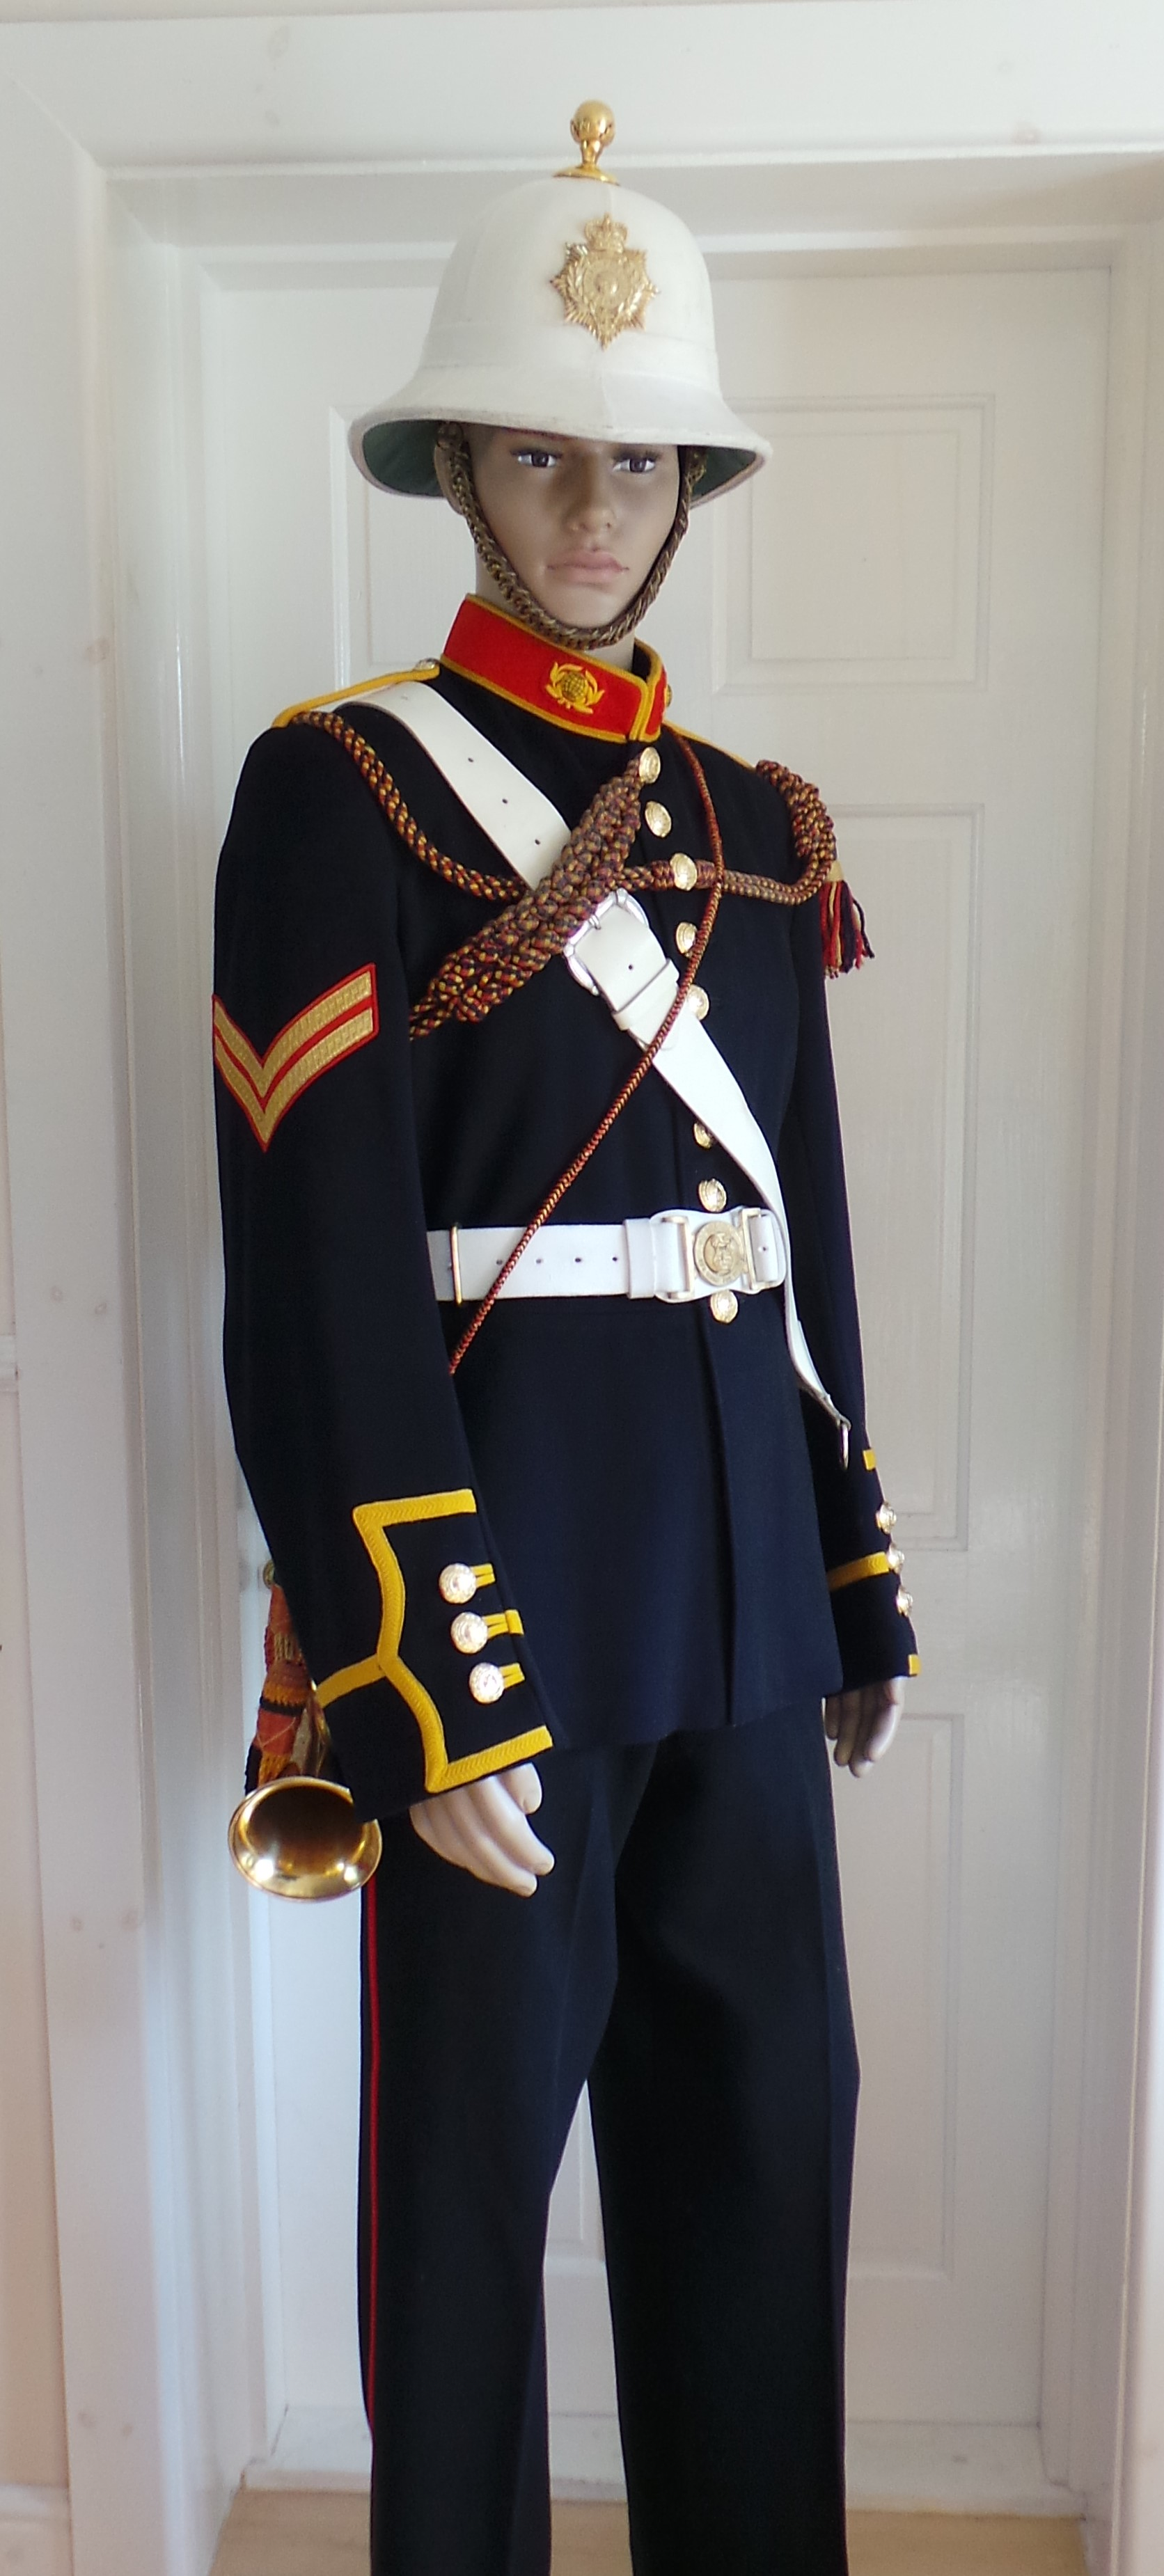 UK Royal Marines Bandsman (1)3